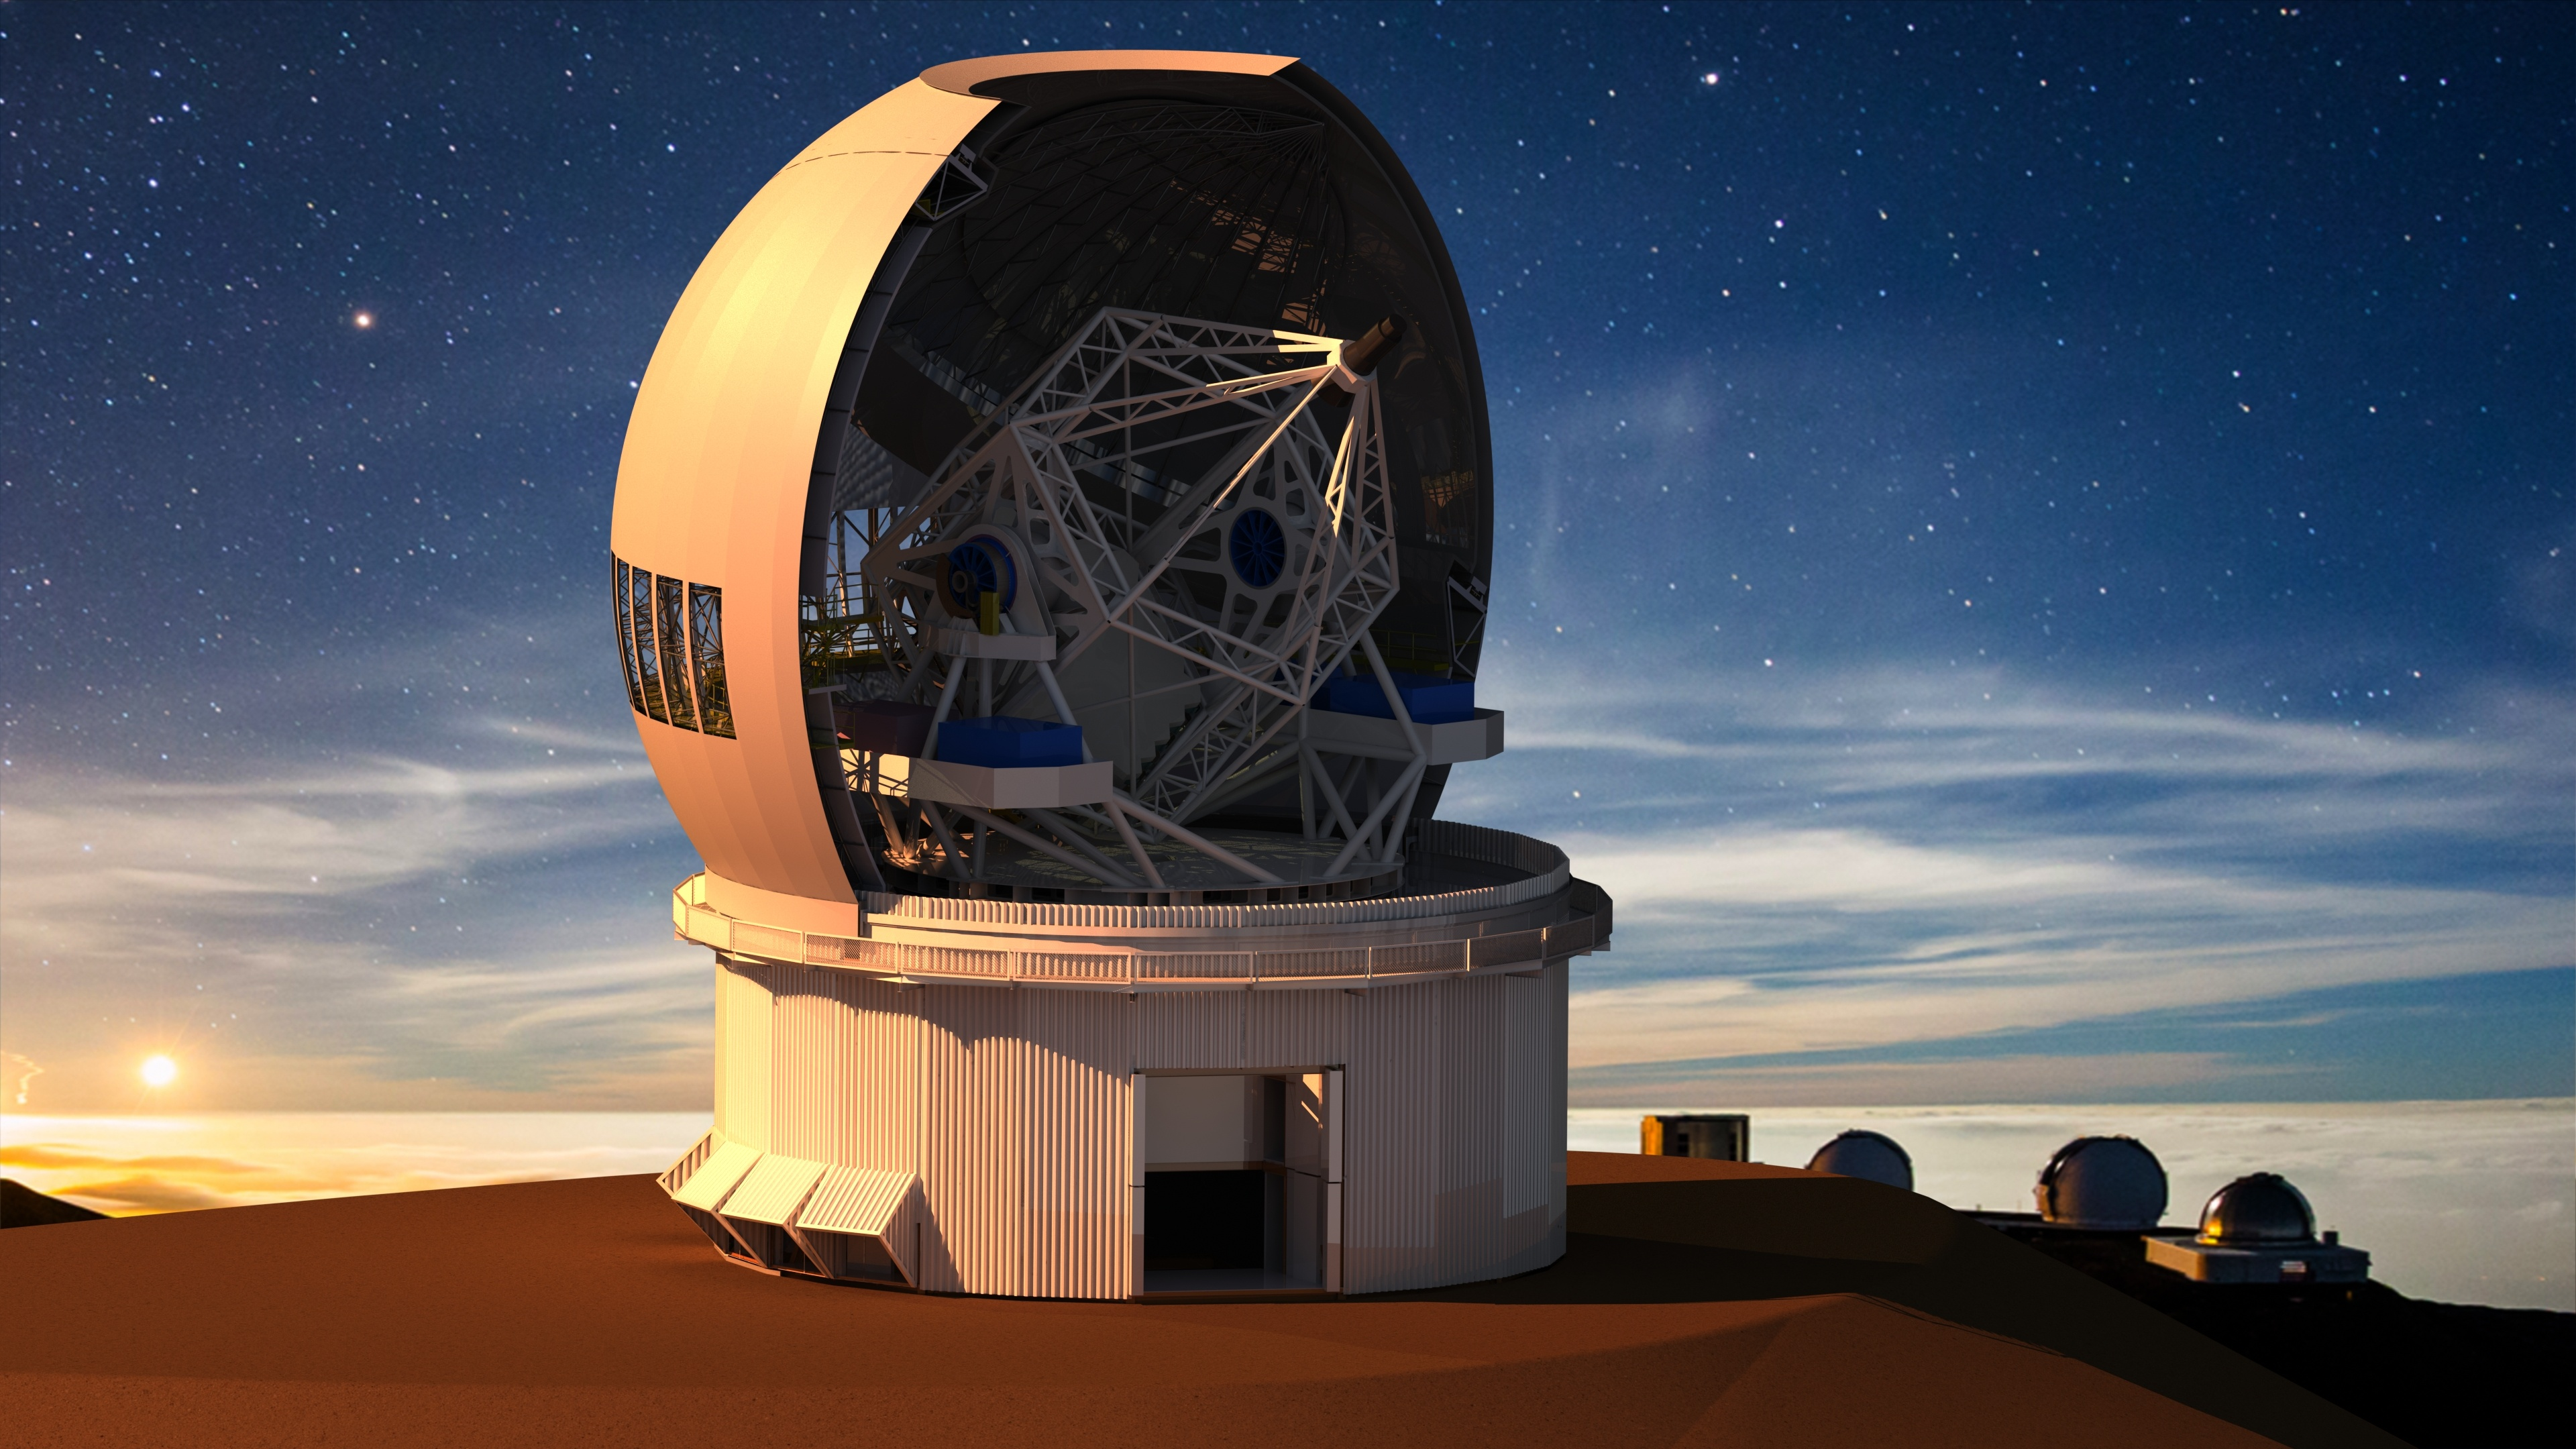 canada-france-hawaii-telescope-rendering-of-telescope-at-sunset